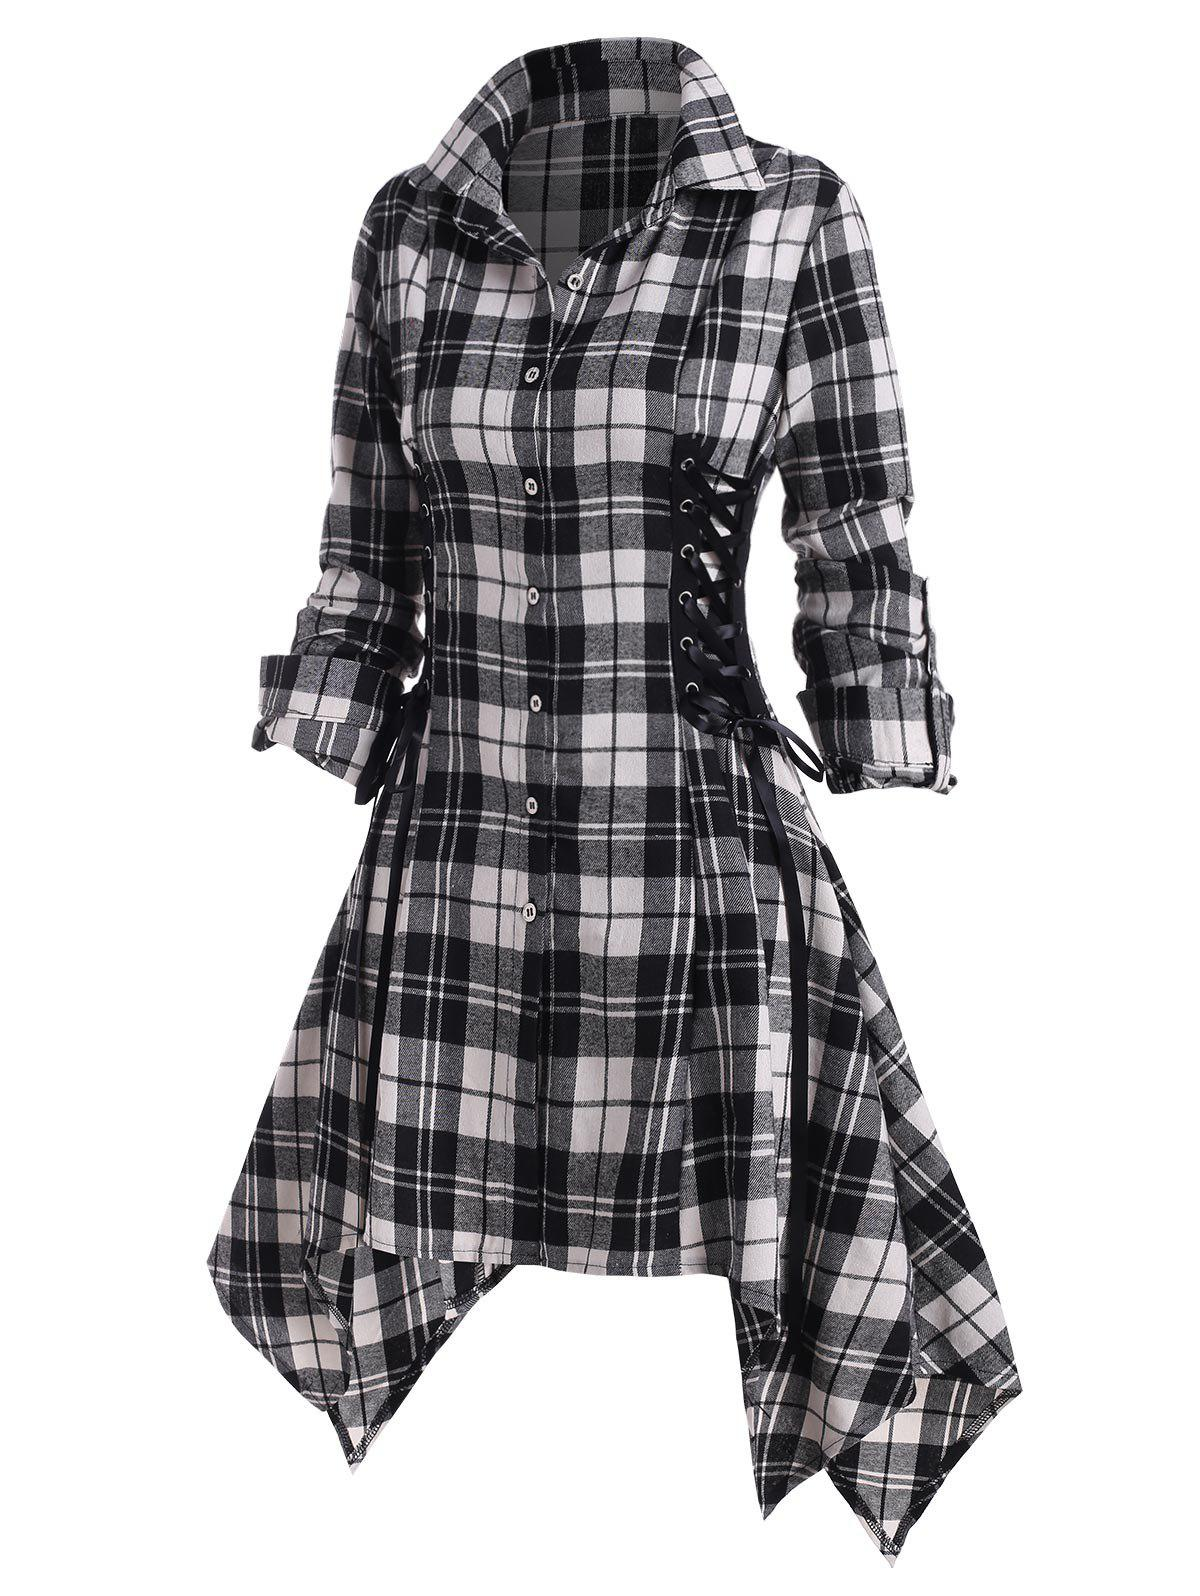 Plaid Lace Up Rolled Up Sleeve Handkerchief Shirt Dress - WHITE M